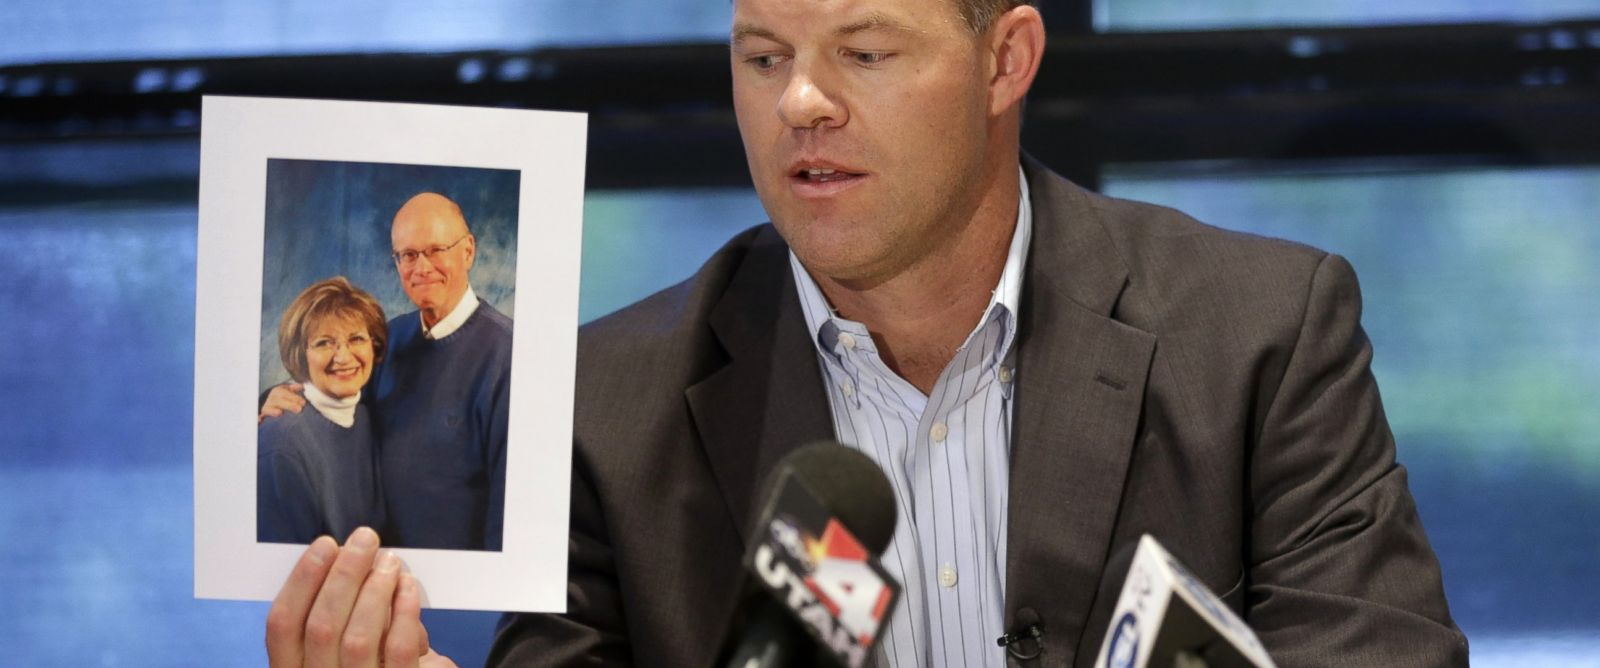 PHOTO: Attorney Paxton Guymon holds a photograph of Jim and Jan Harding during a news conference in Salt Lake City, Aug. 14, 2014.